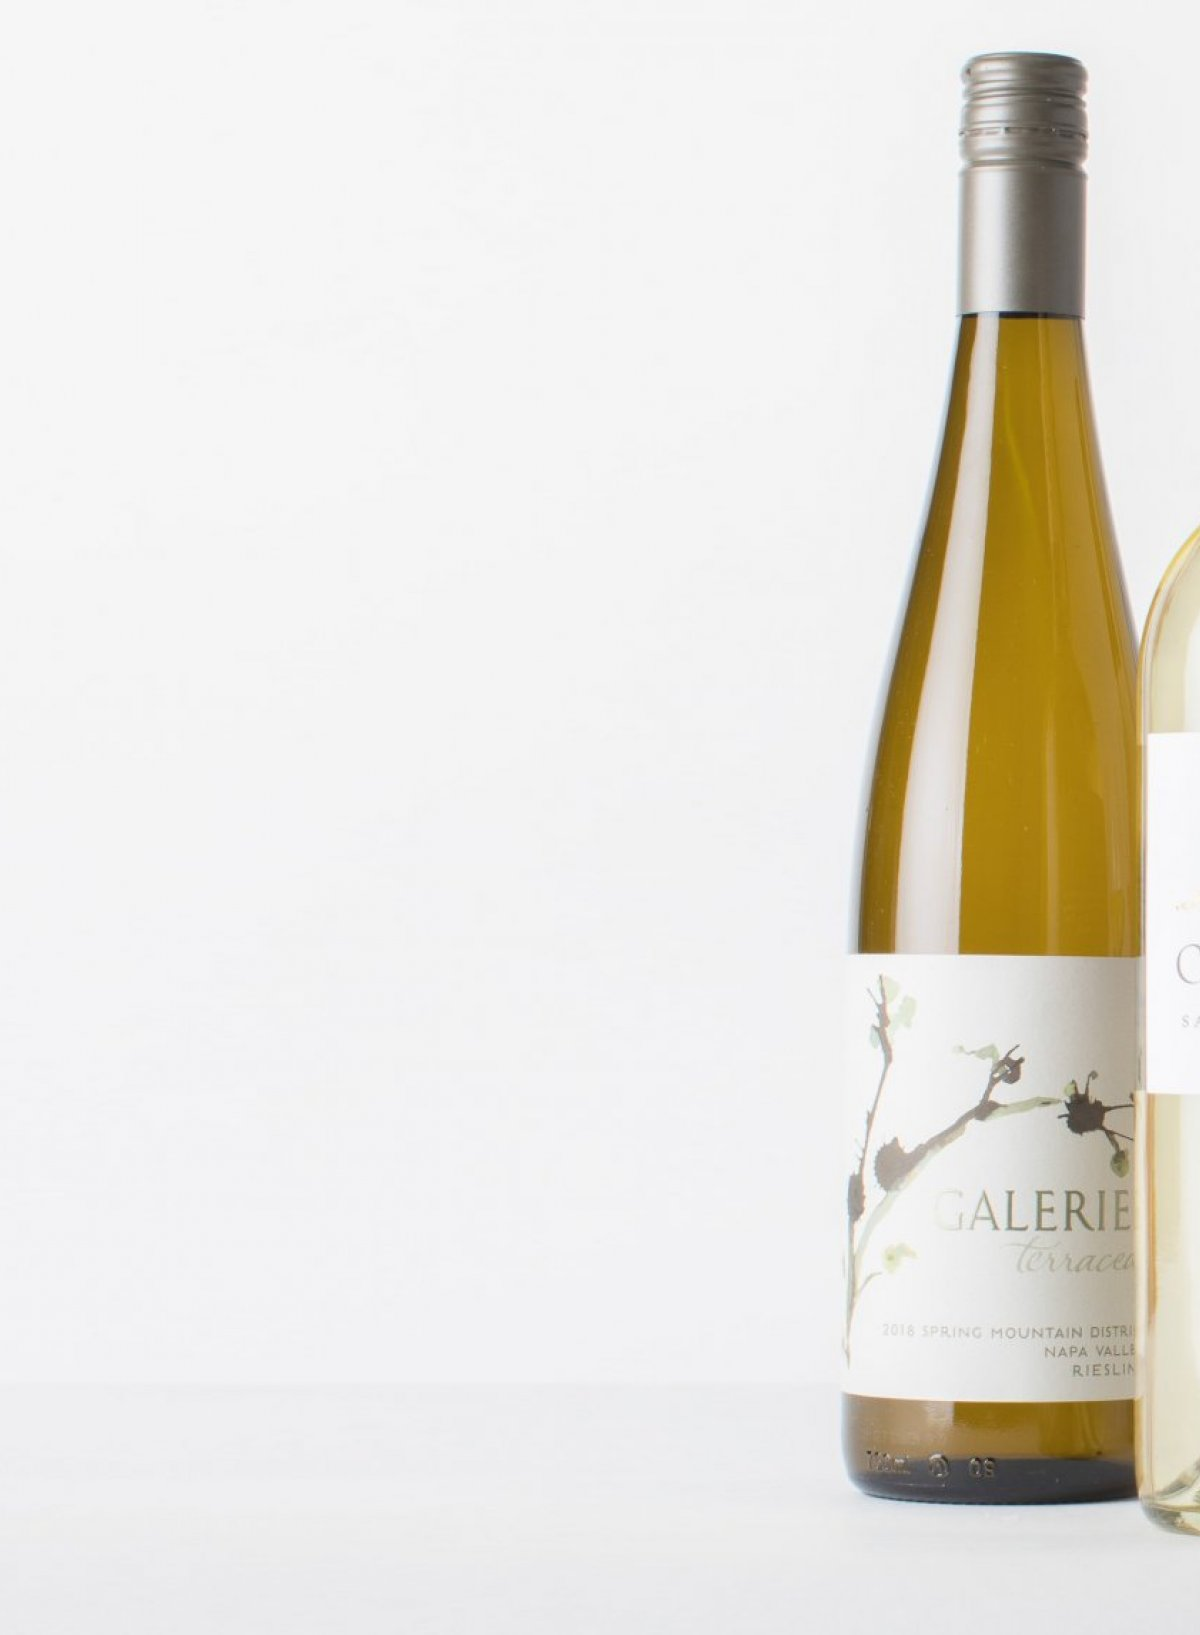 Hartford Russian River Valley Rose 2020,  Capture Tradition Sauvignon Blanc 2018,   Galerie Terracea Spring Mountain Riesling 2018